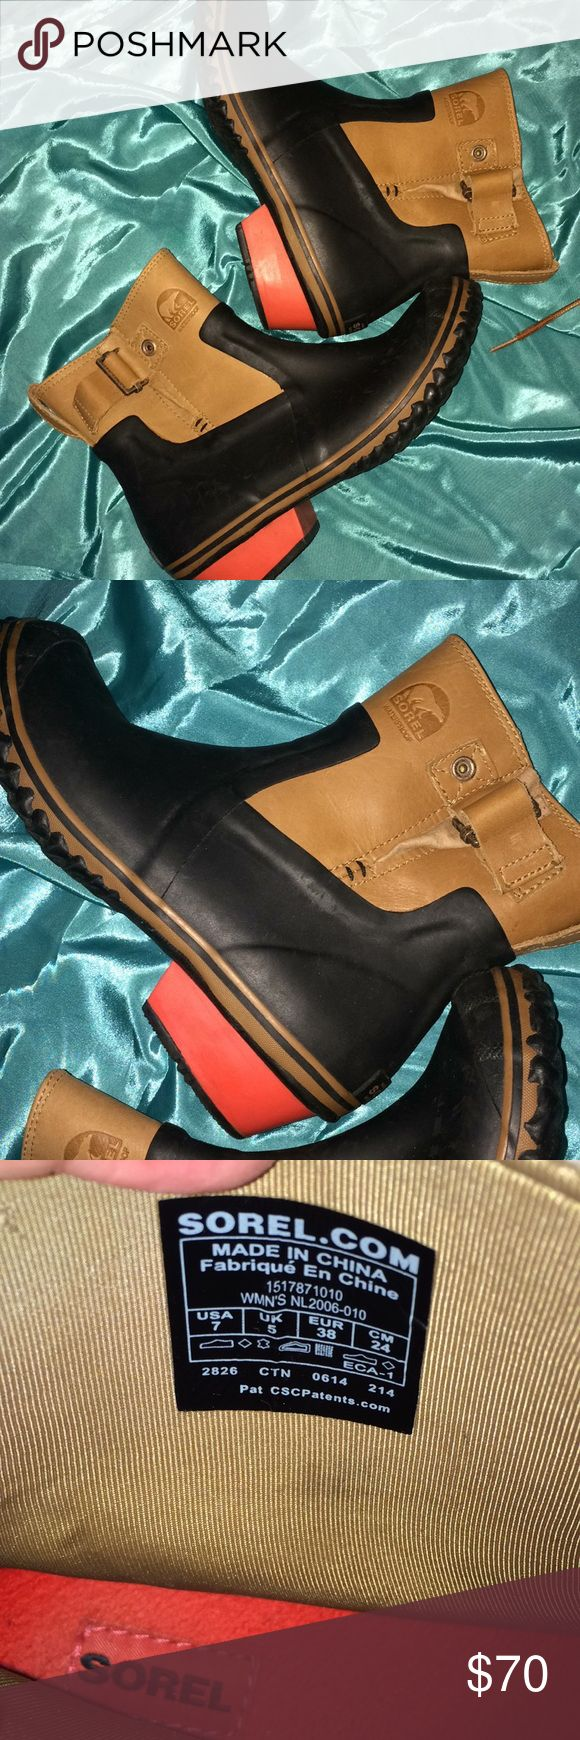 Sorel rain boots Very rare ,and adorable Leather and rubber rain boots by sorel , keep you dry and fashionable, the lining  bed is so soft and comfy ,size 7fit size 7.5 Sorel Shoes Winter & Rain Boots